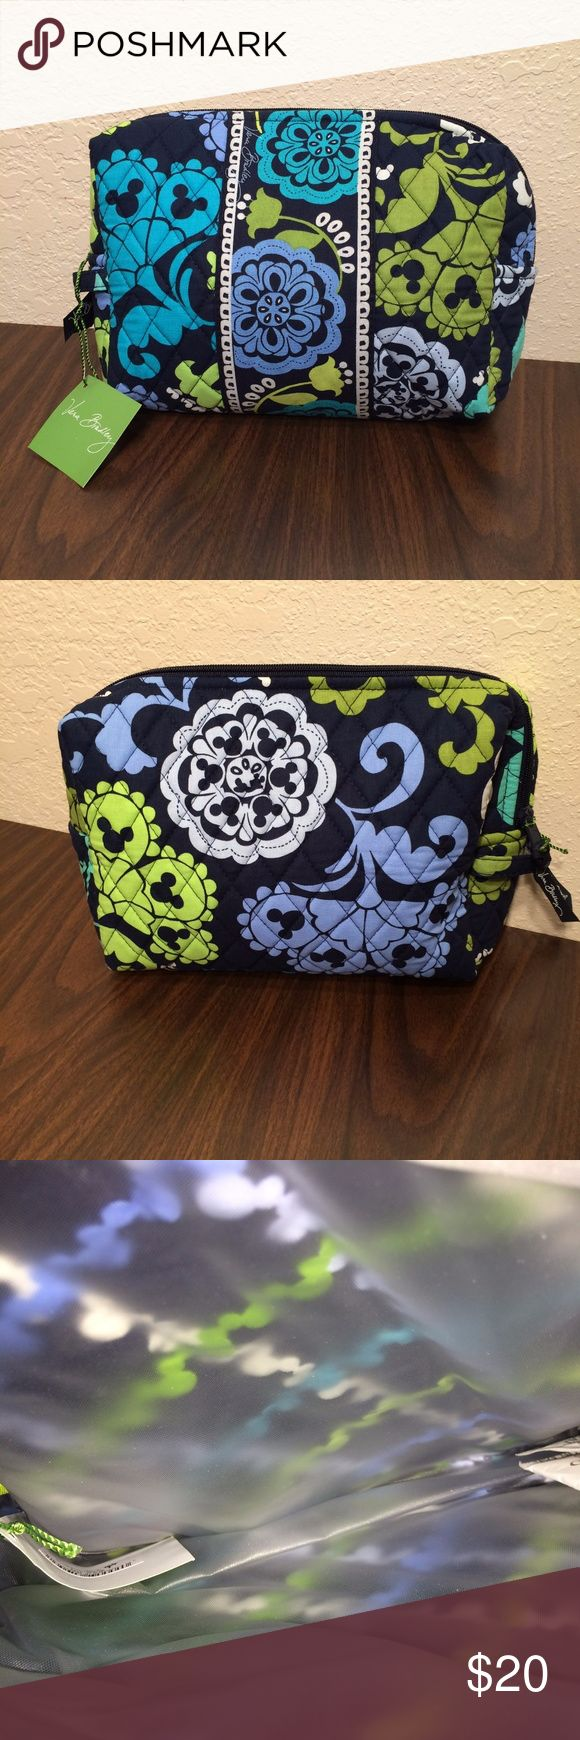 Vera Bradley Where's Mickey Large Cosmetic NWT Vera Bradley Disney Large Cosmetic Bag! It is lined and has a small loop to attach it to other bags. Zippered closure. This comes from a smoke free and pet free home! Vera Bradley Bags Cosmetic Bags & Cases